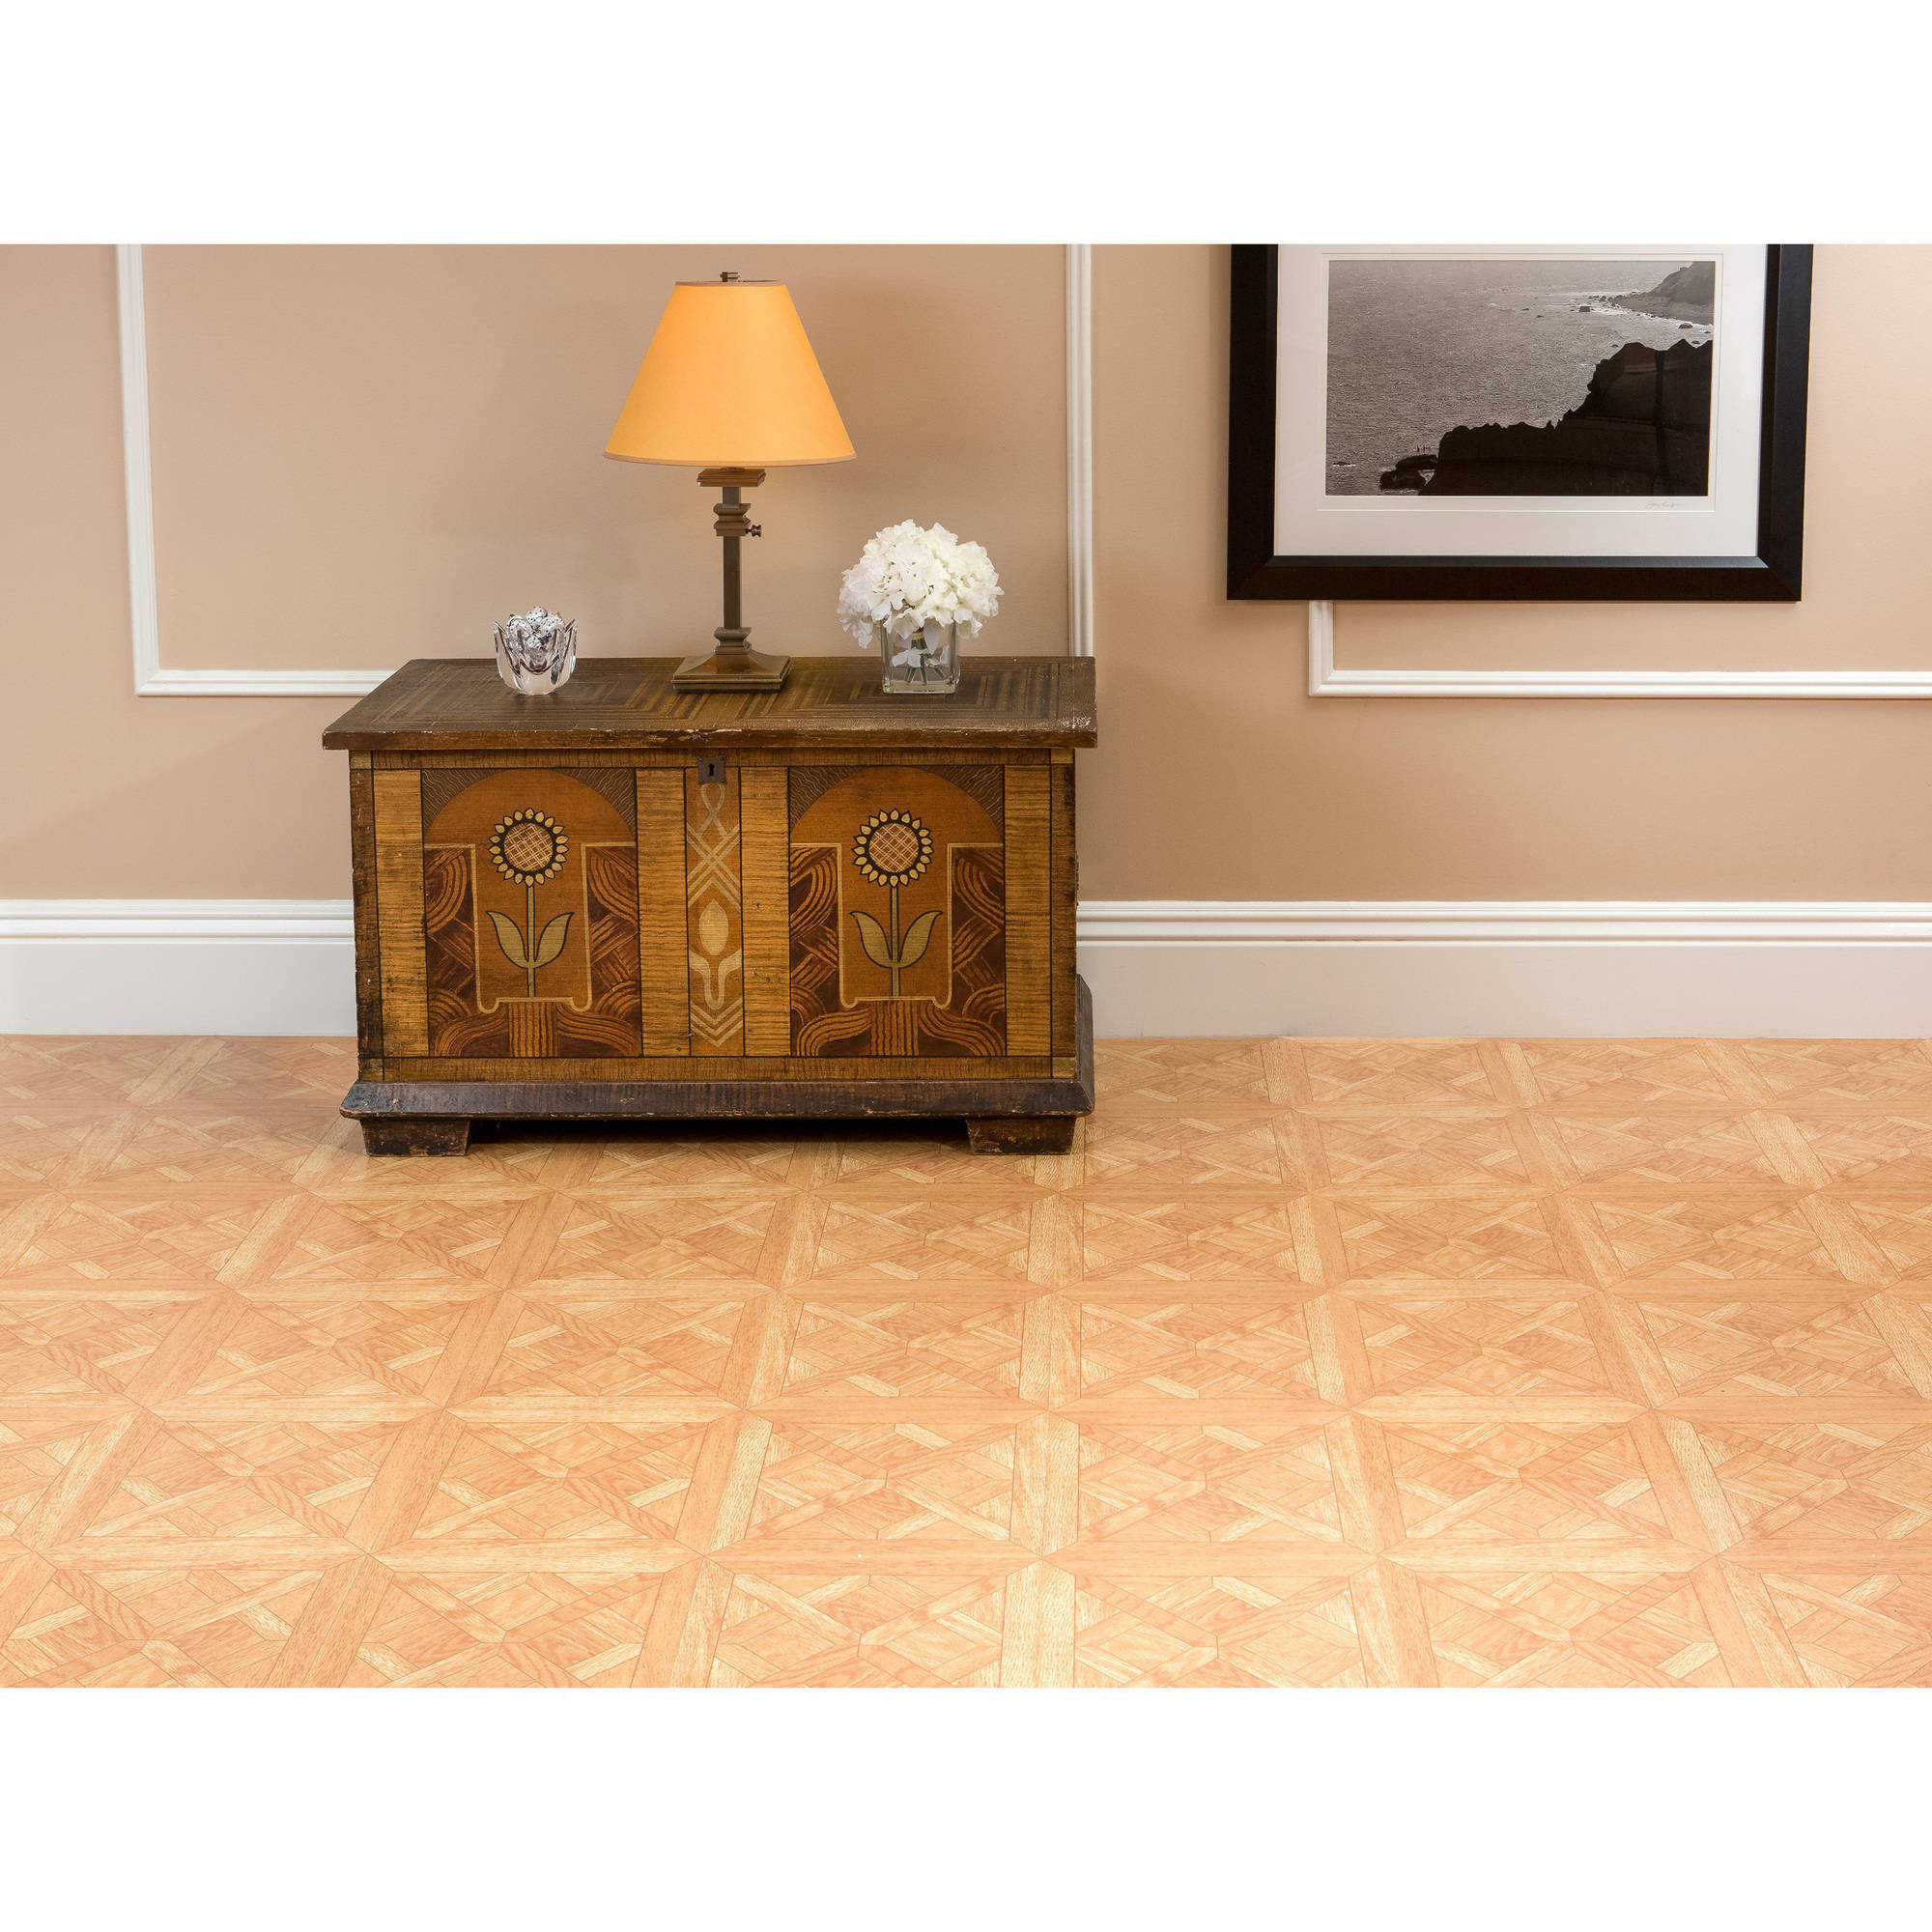 Nexus Classic Parquet Oak 12x12 Self Adhesive Vinyl Floor Tile - 20 Tiles/20 sq. ft.